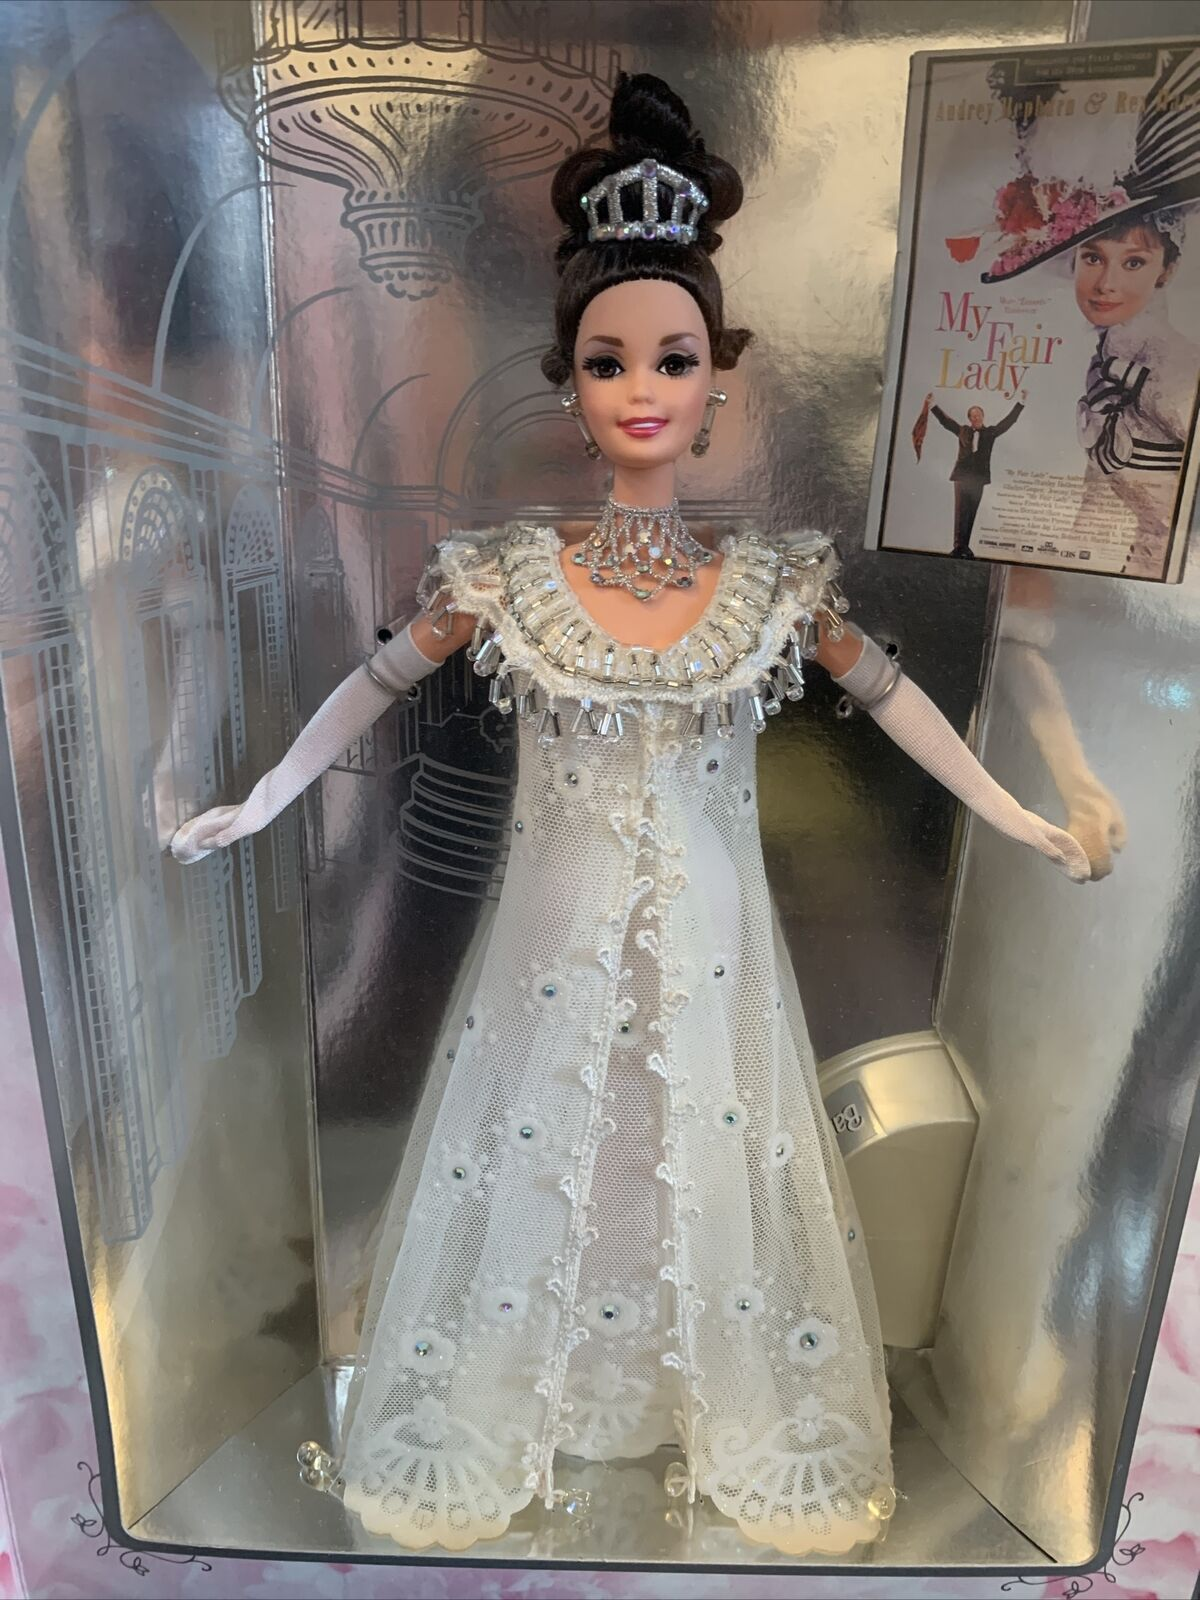 Barbie Doll As Eliza Doolittle From My Fair Lady At The Embassy Ball 15500 For Sale Online Ebay